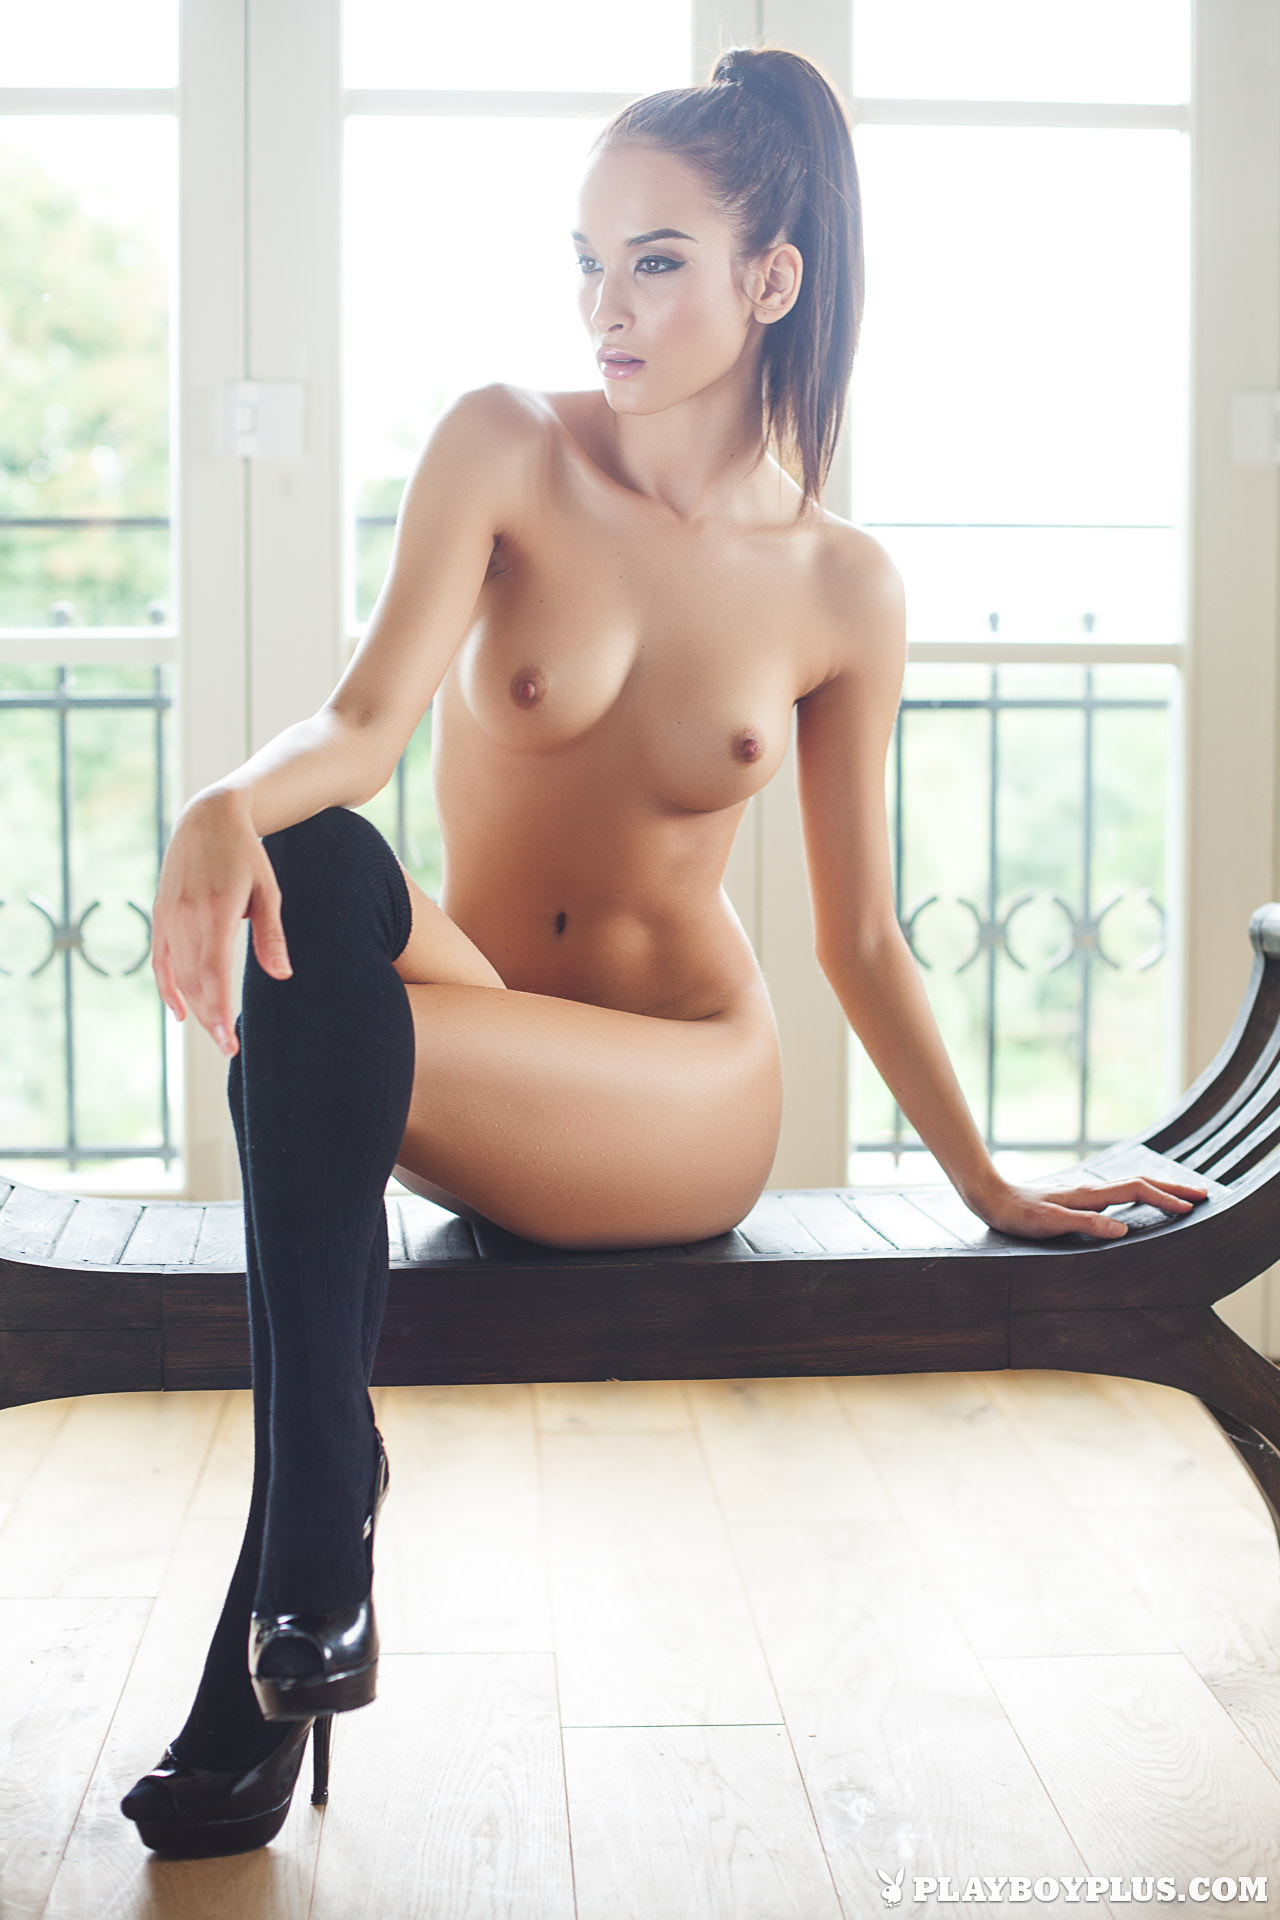 Hot nude lady inter